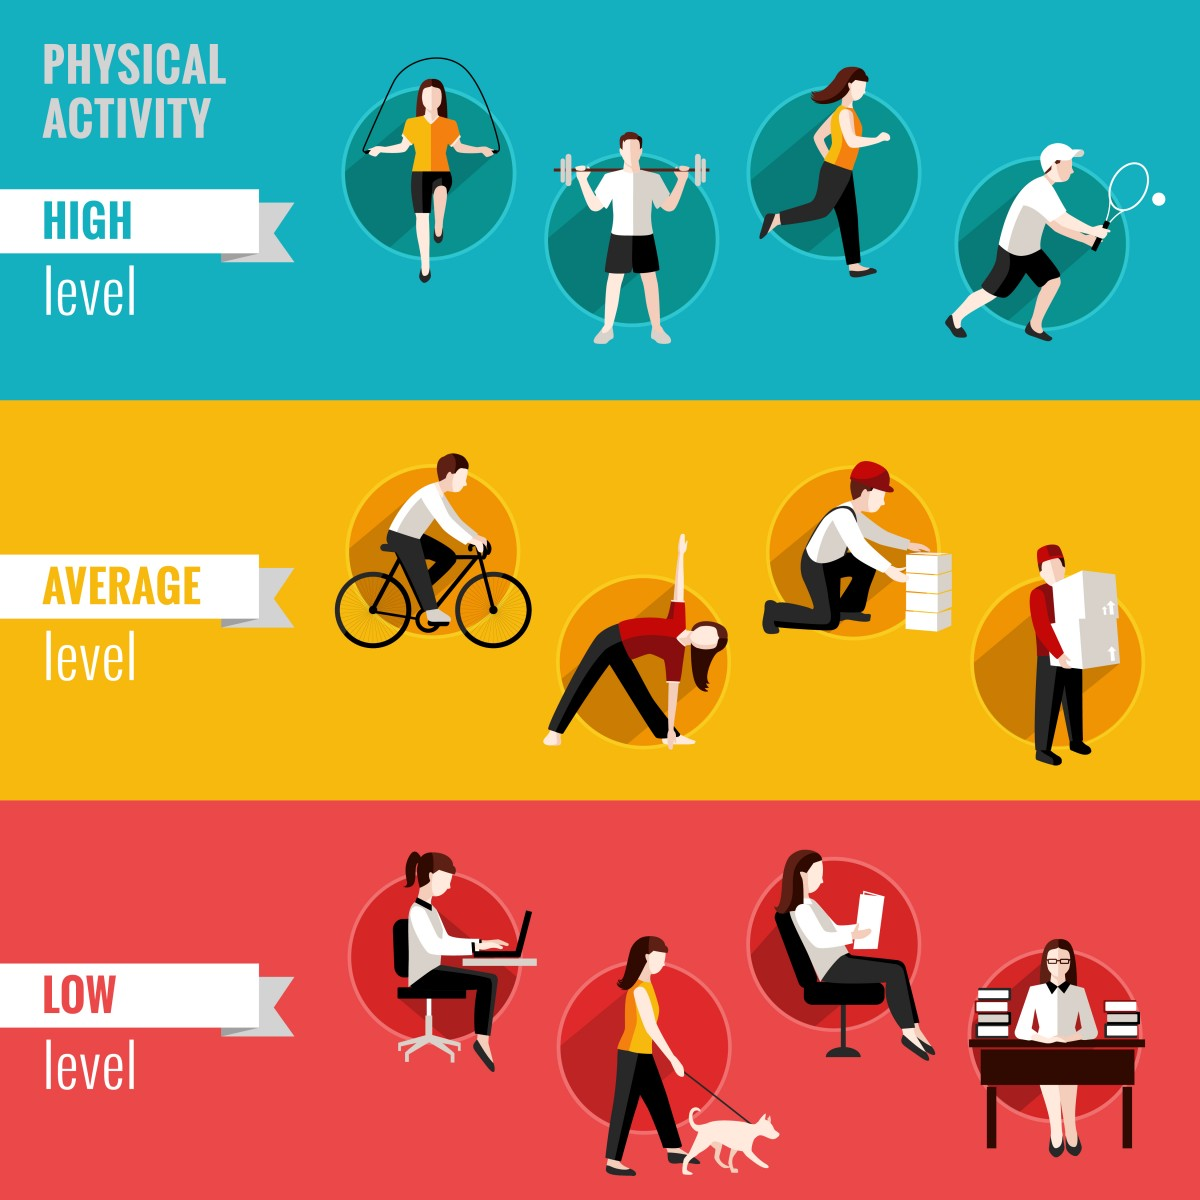 Bronchiectasis Patients Exhibit Higher Sedentary Lifestyles and Treatment Should Include Physical Activity Interventions